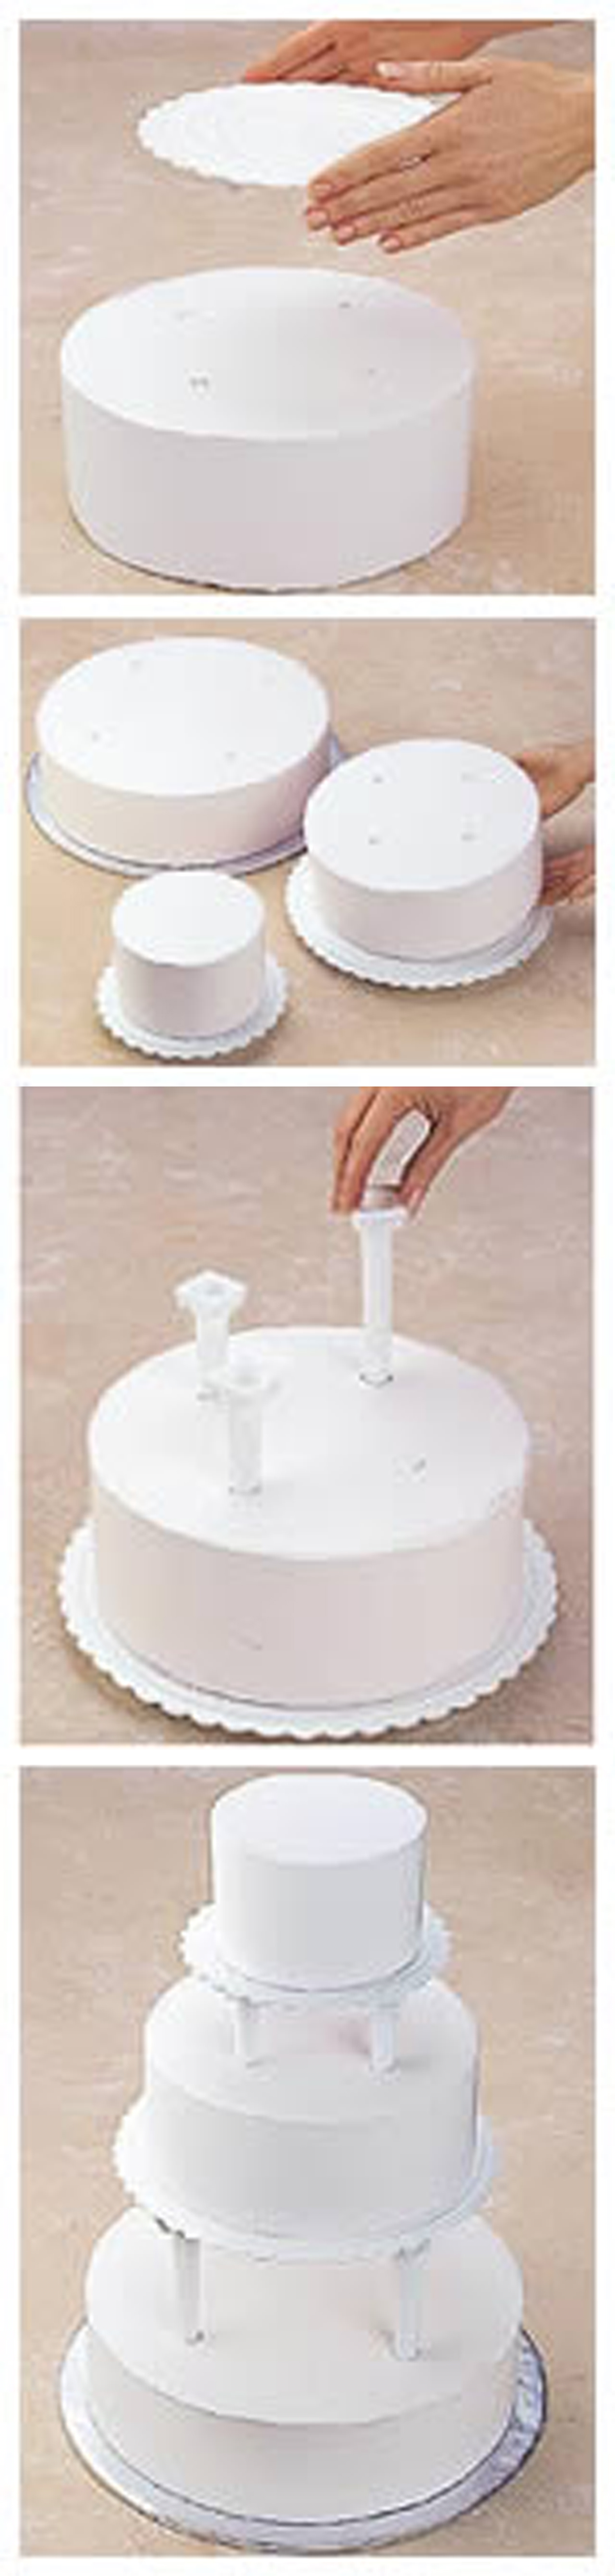 Push-in Pillar Cake Construction http://www.wilton.com/cakes/tiered ...